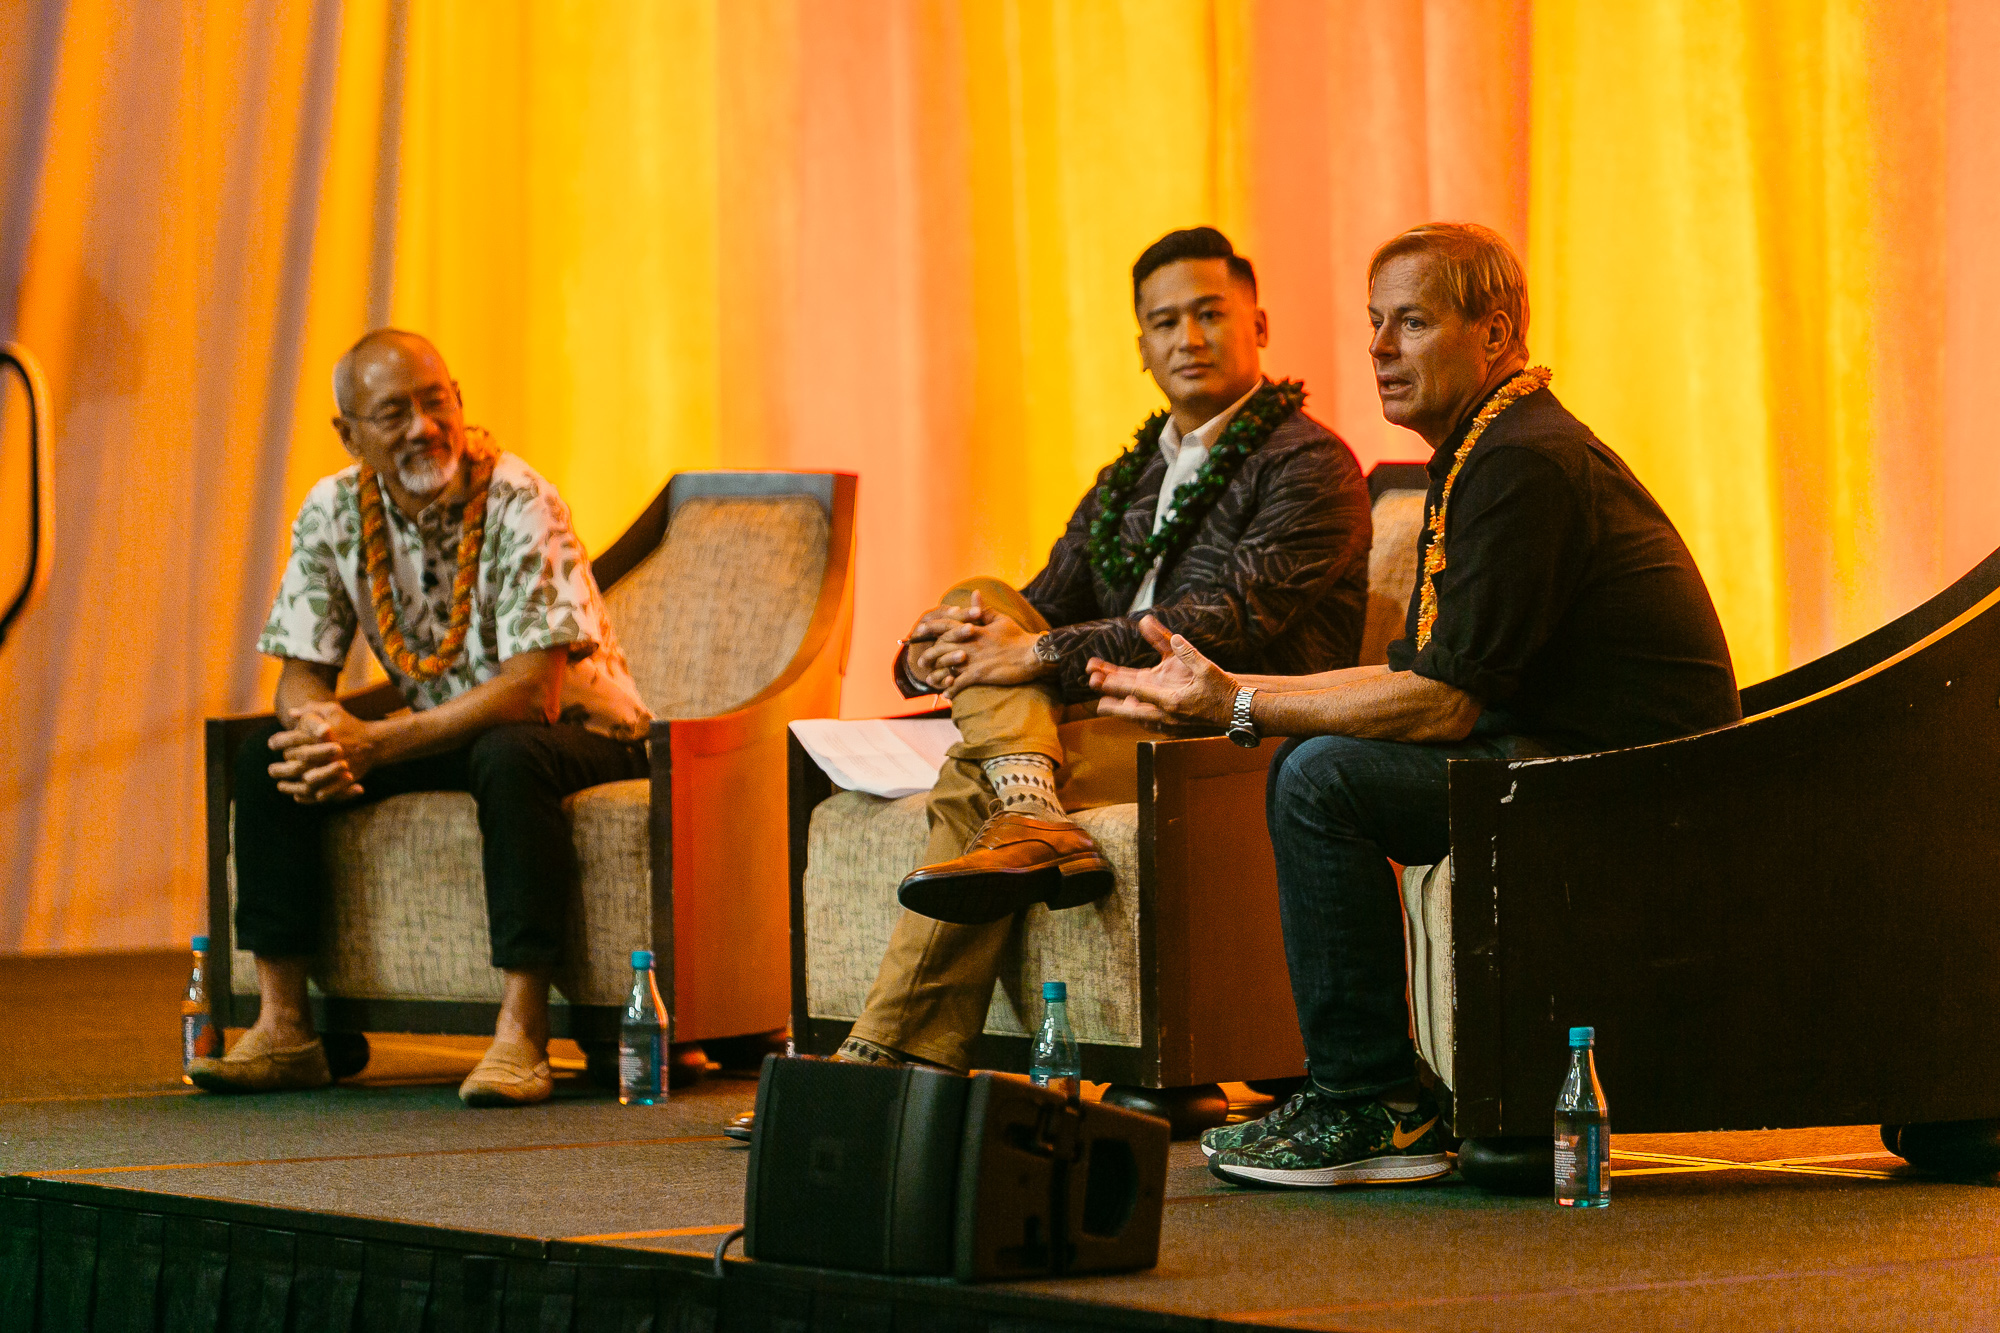 """The keynote talk story, """"Cultivating Culture Within Your Company,"""" featured Hurley Founder Bob Hurley and Sig Zane Designs Founder Sig Zane, which was moderated by Hawaii Business Digital Media Director Daniel Ikaika Ito."""